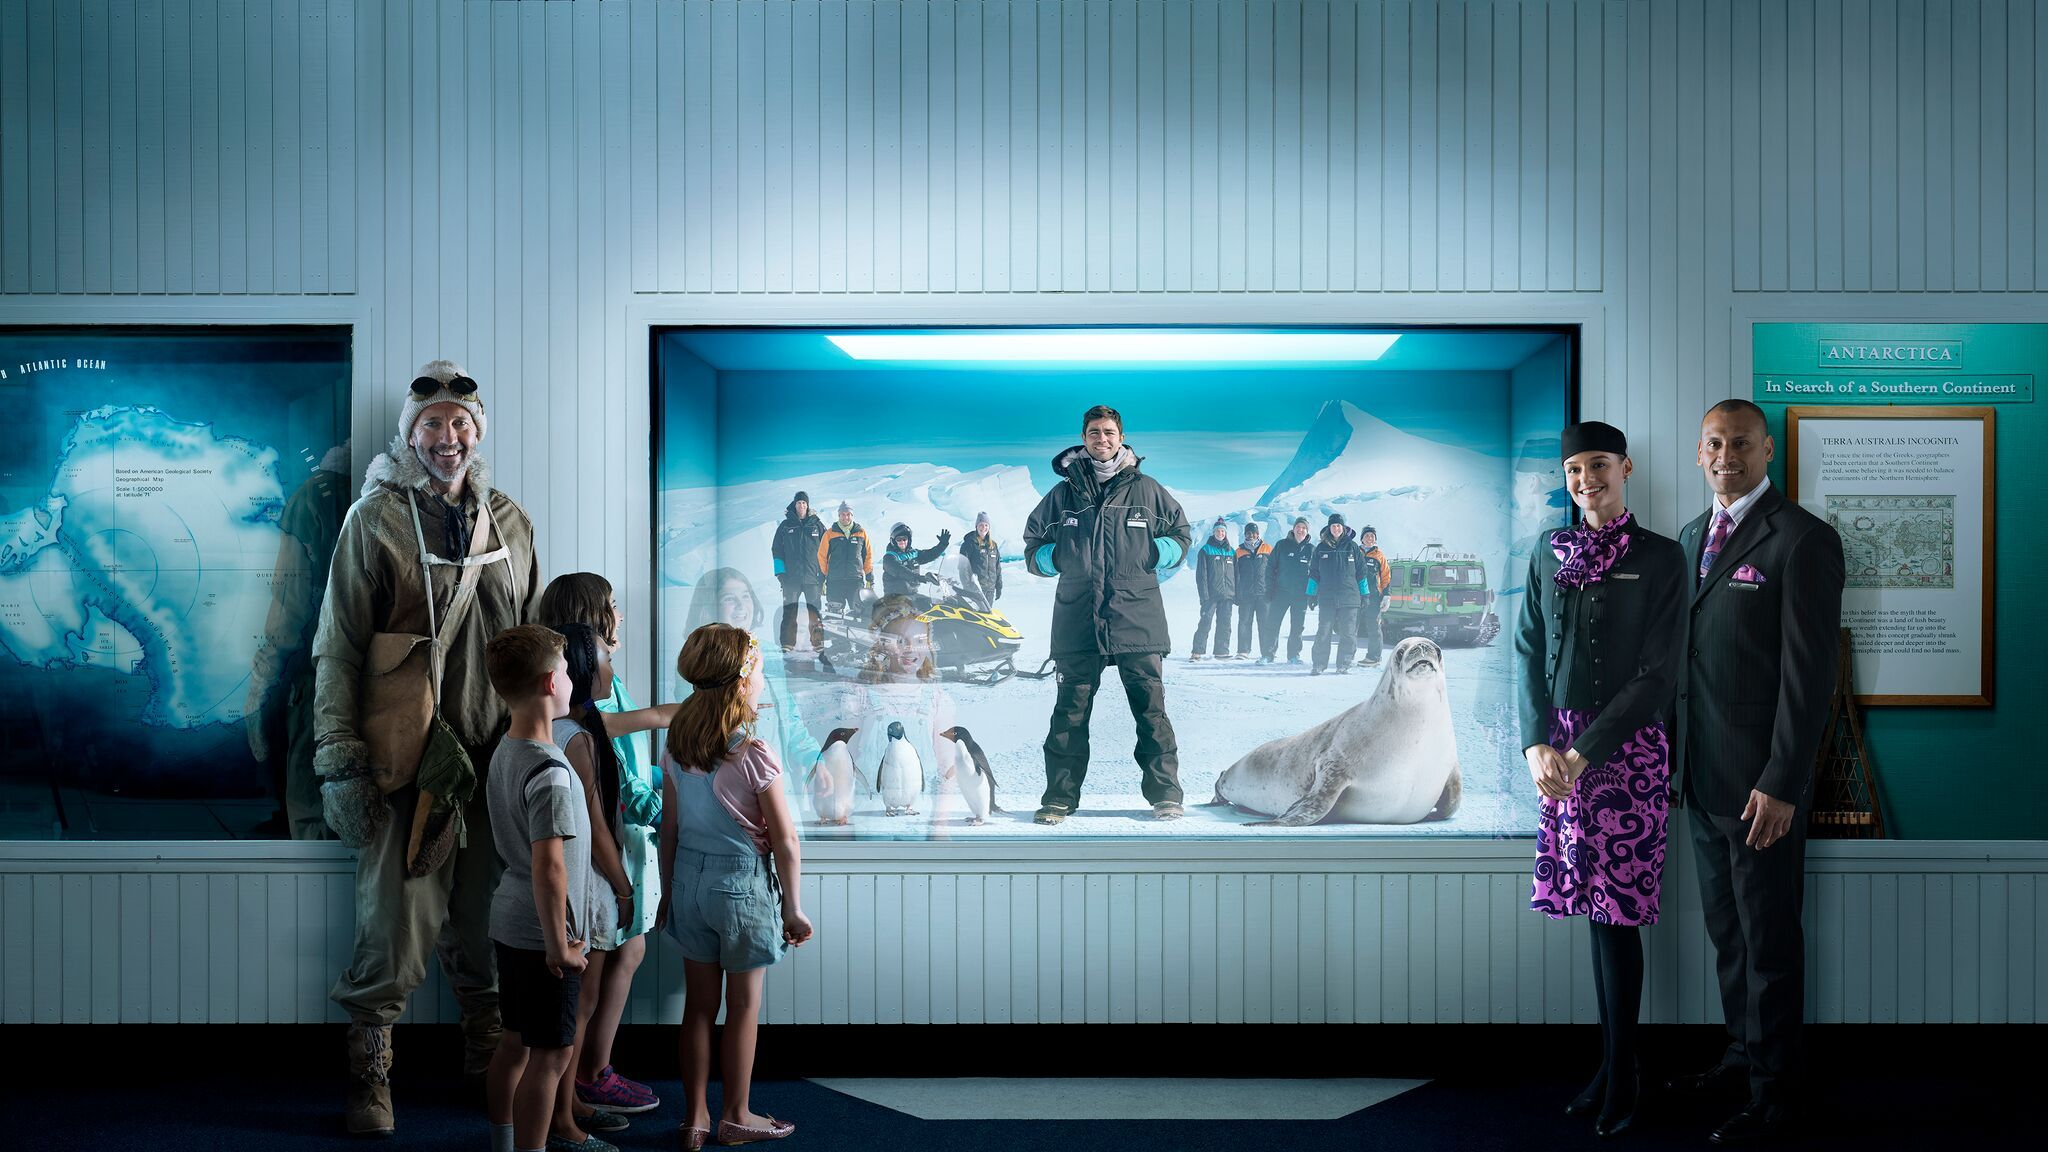 Air New Zealand – The World's Coolest Safety Video